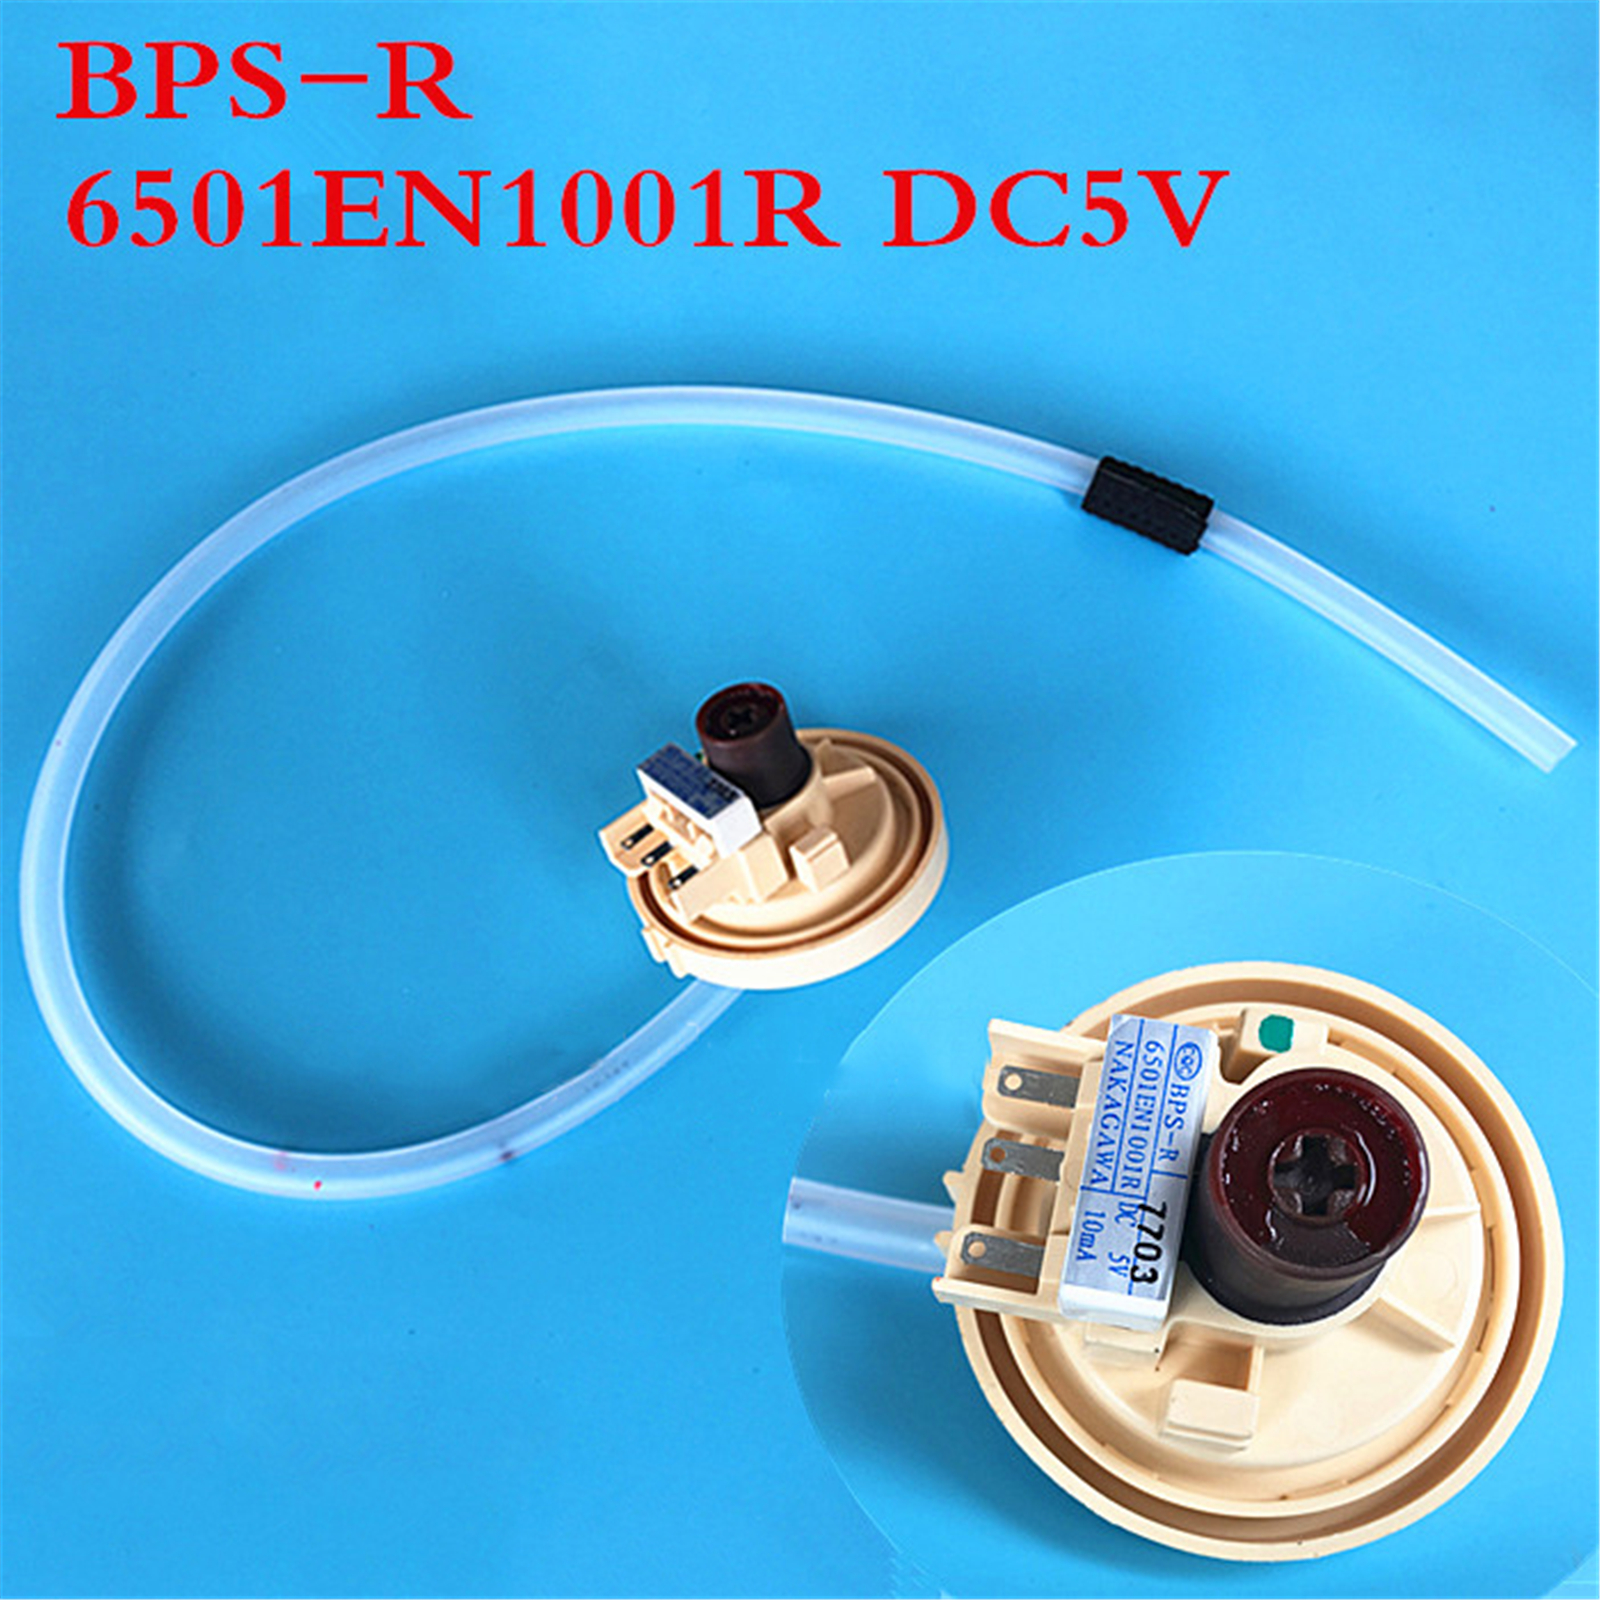 Replacement Water Level Pressure Sensor Switch for LG Automatic Washing Machine  BPS R 6501EA1001R Controller Switch|Washing Machine Parts| |  - title=